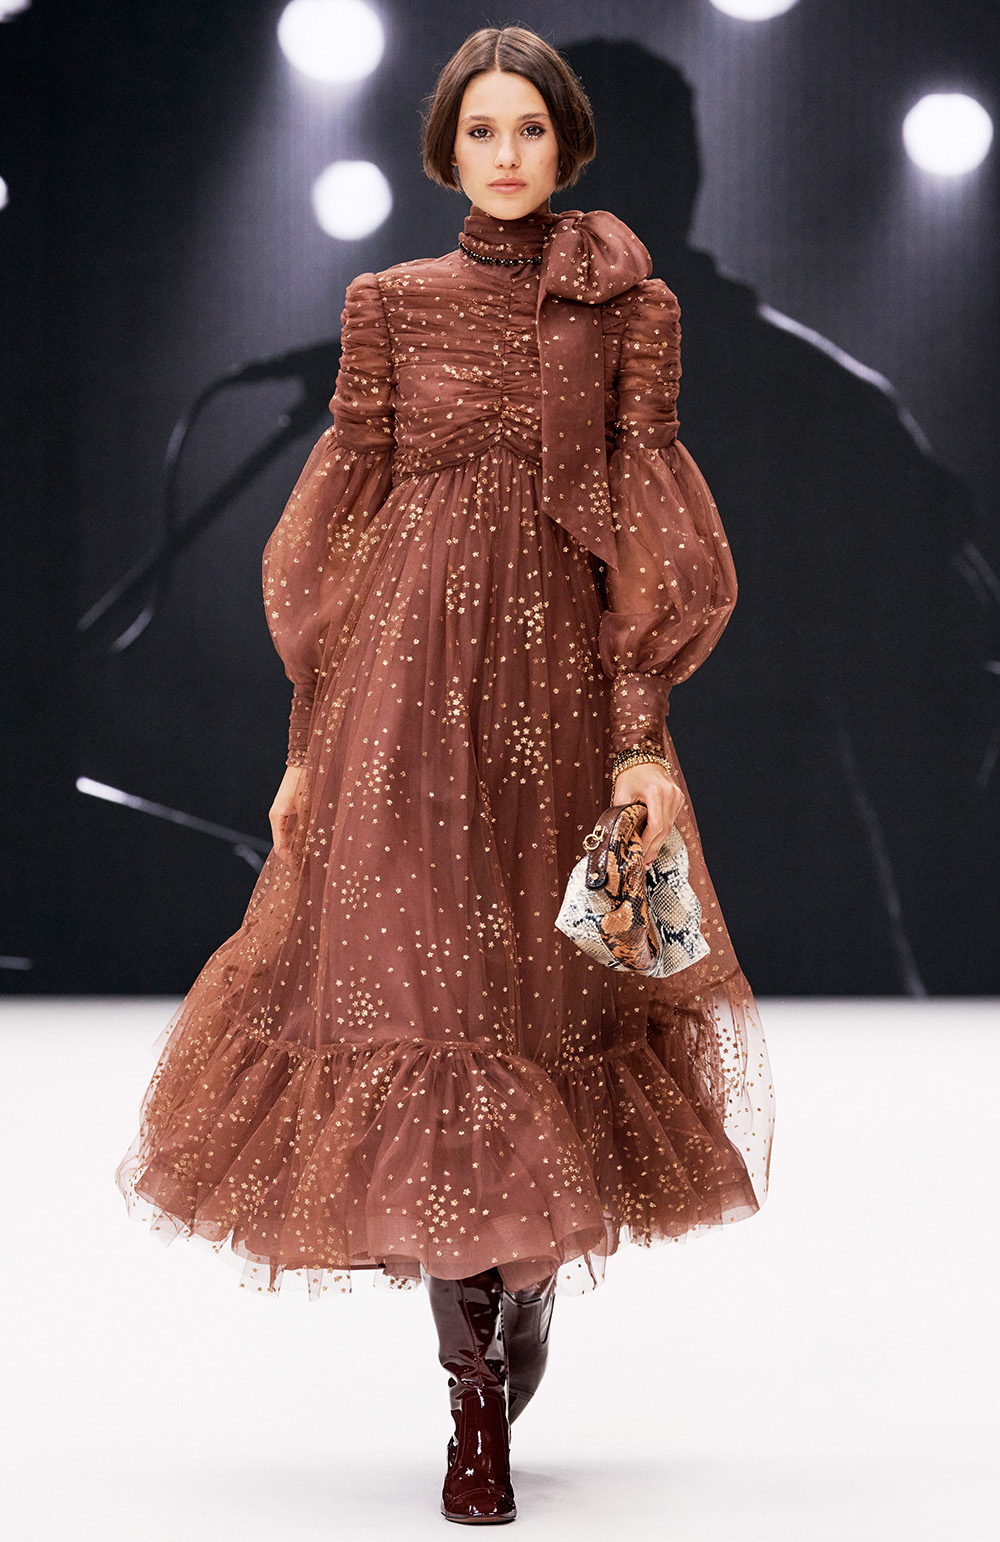 Best NYFW Looks I Zimmermann Fall 2021 Collection #fashionista #fashionblog